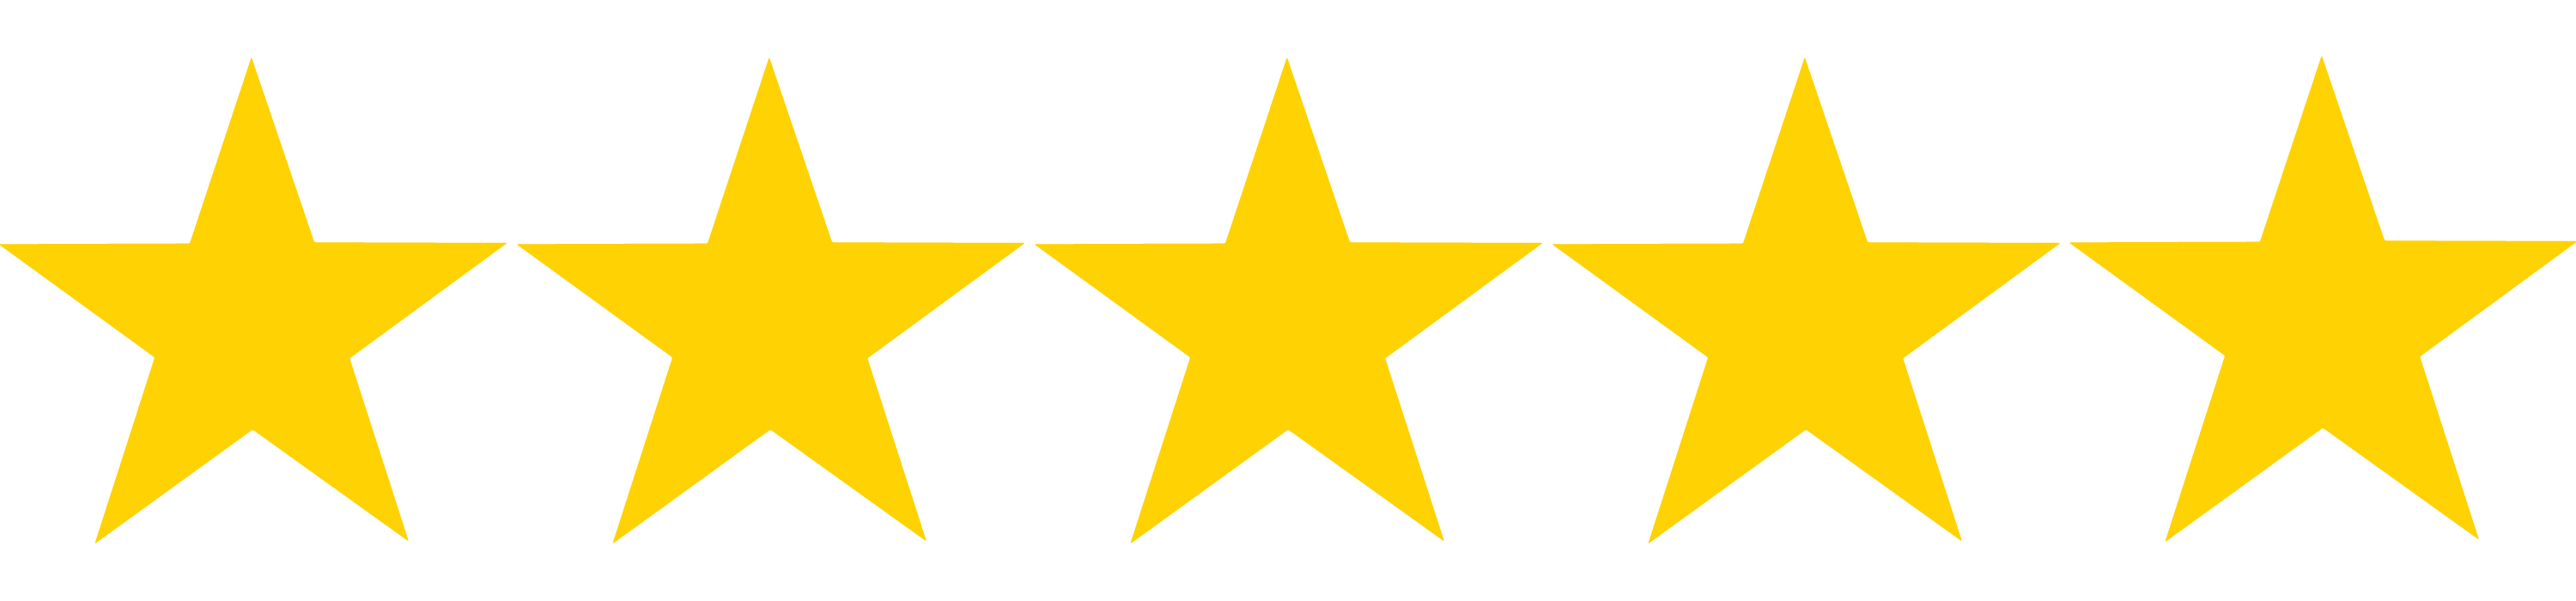 Star Rating Icon #33878.